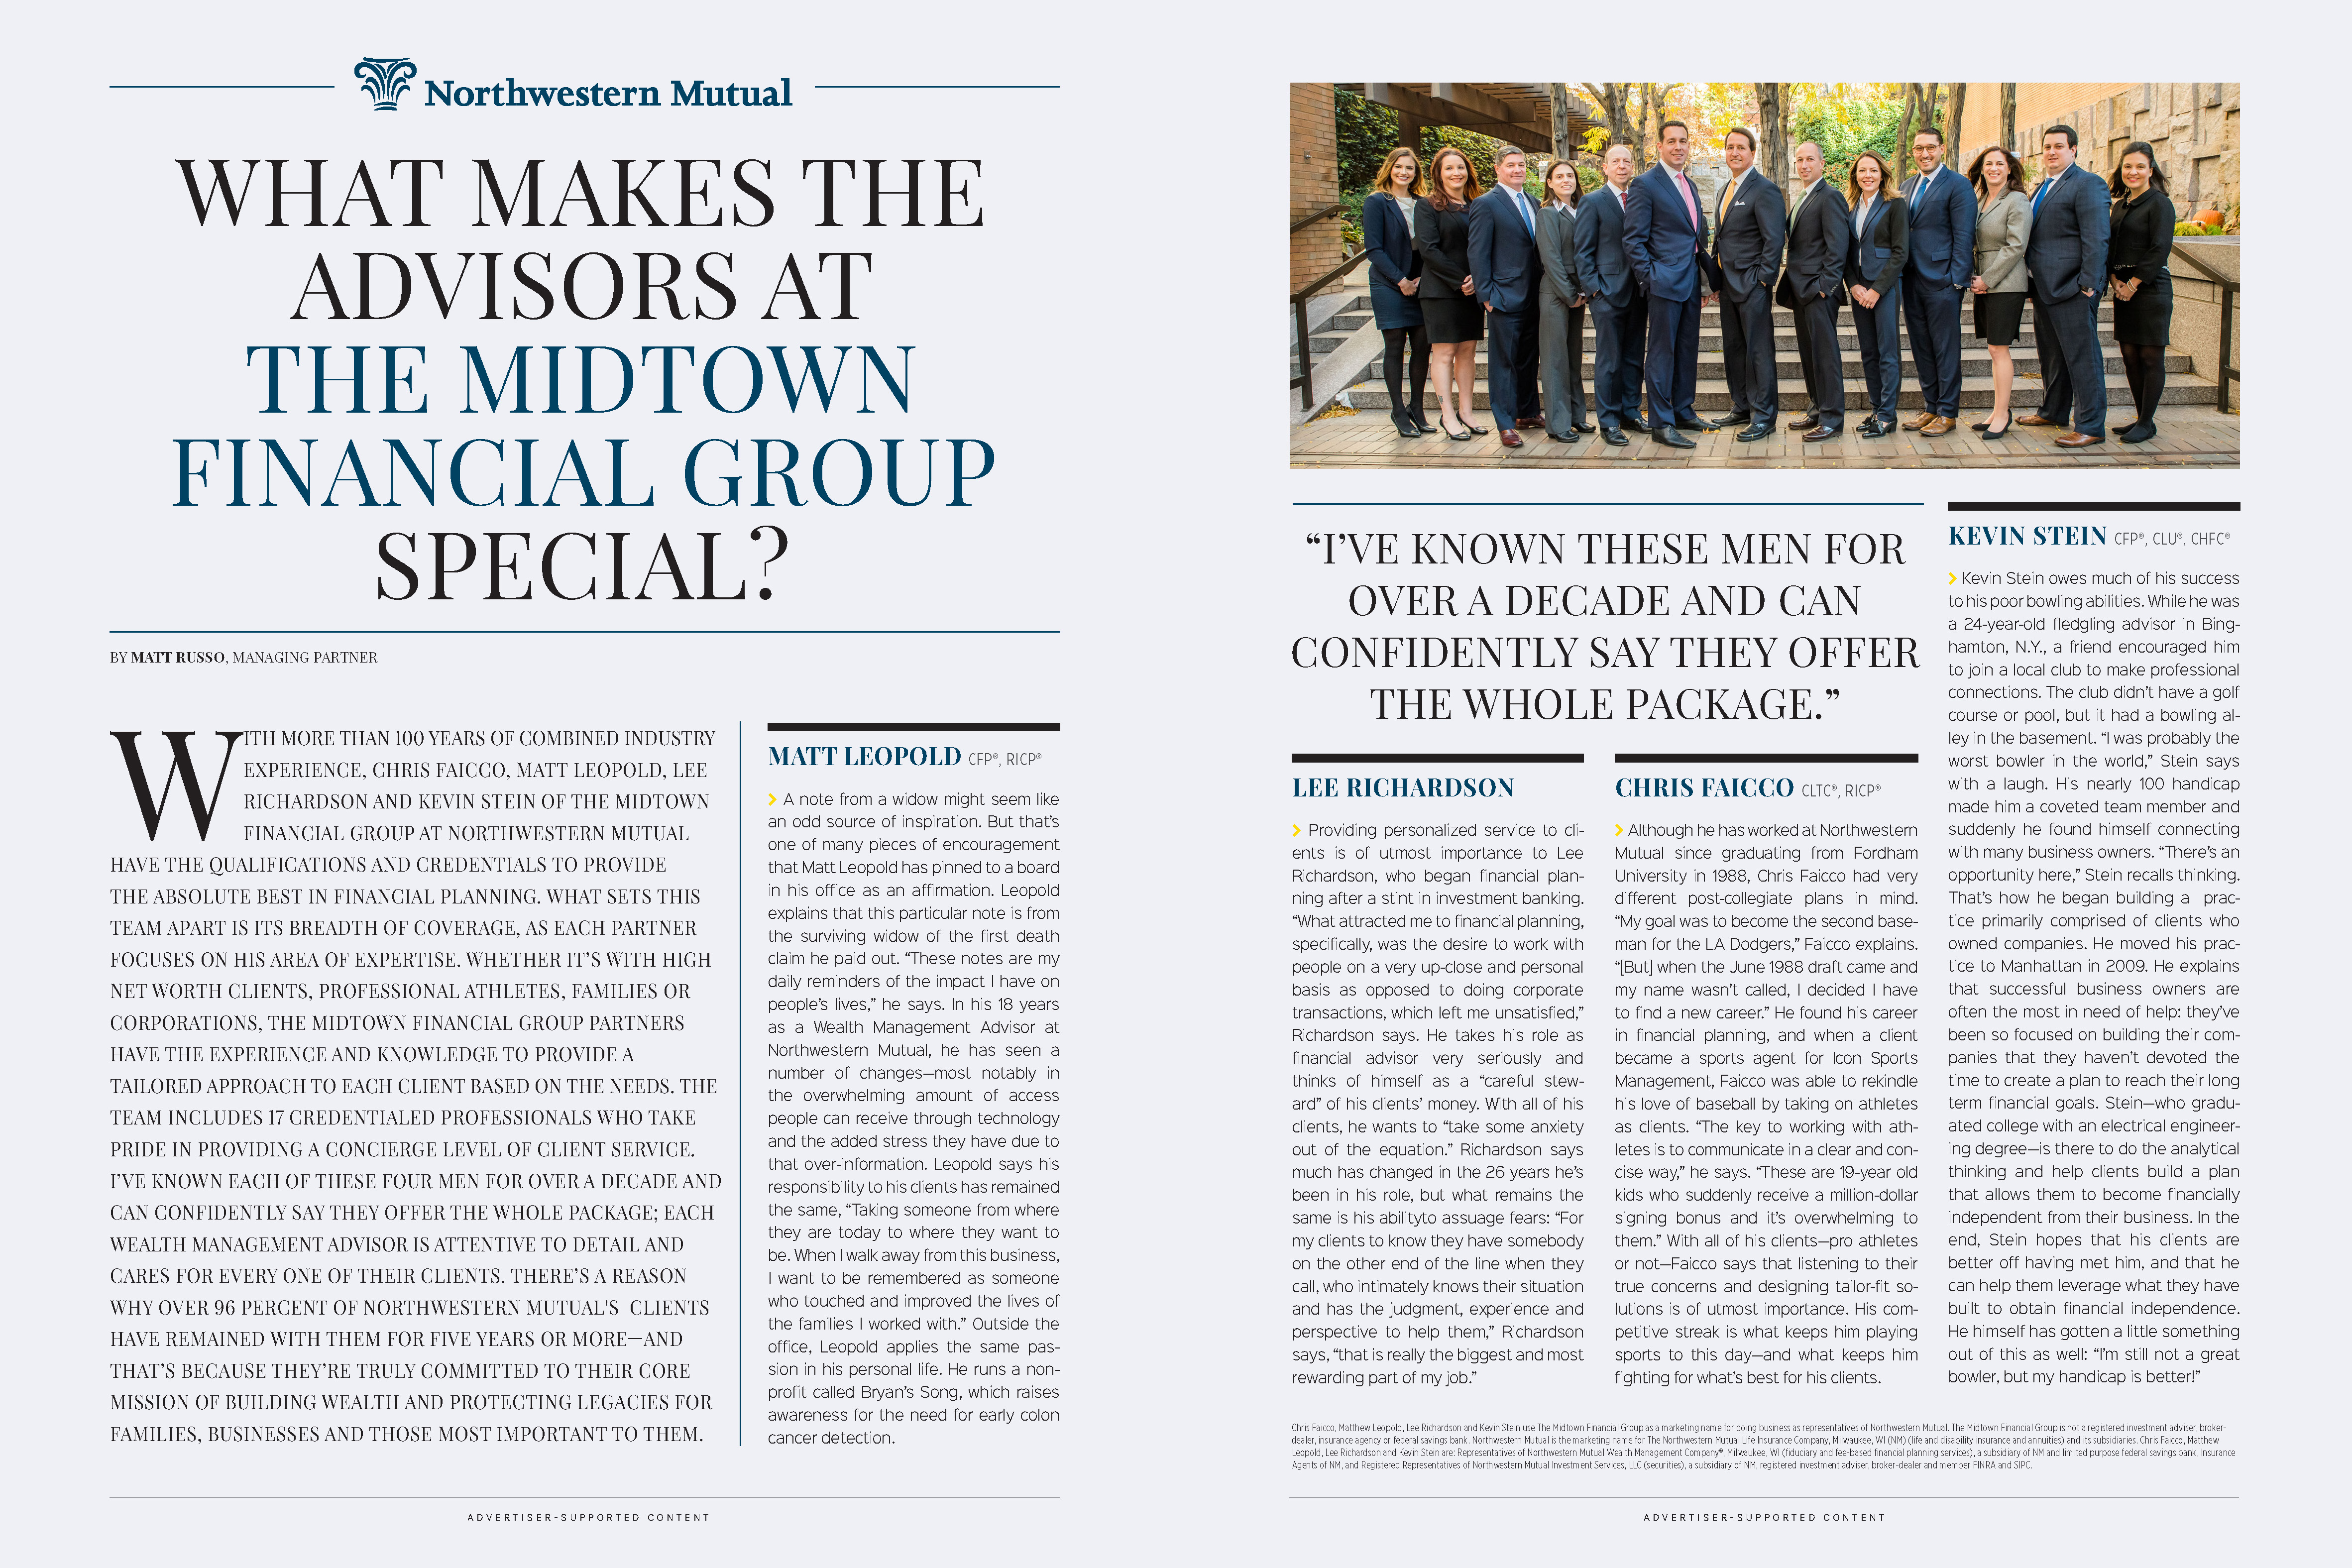 Northwestern Mutual: What Makes the Advisors at The Midtown Financial Group Special?